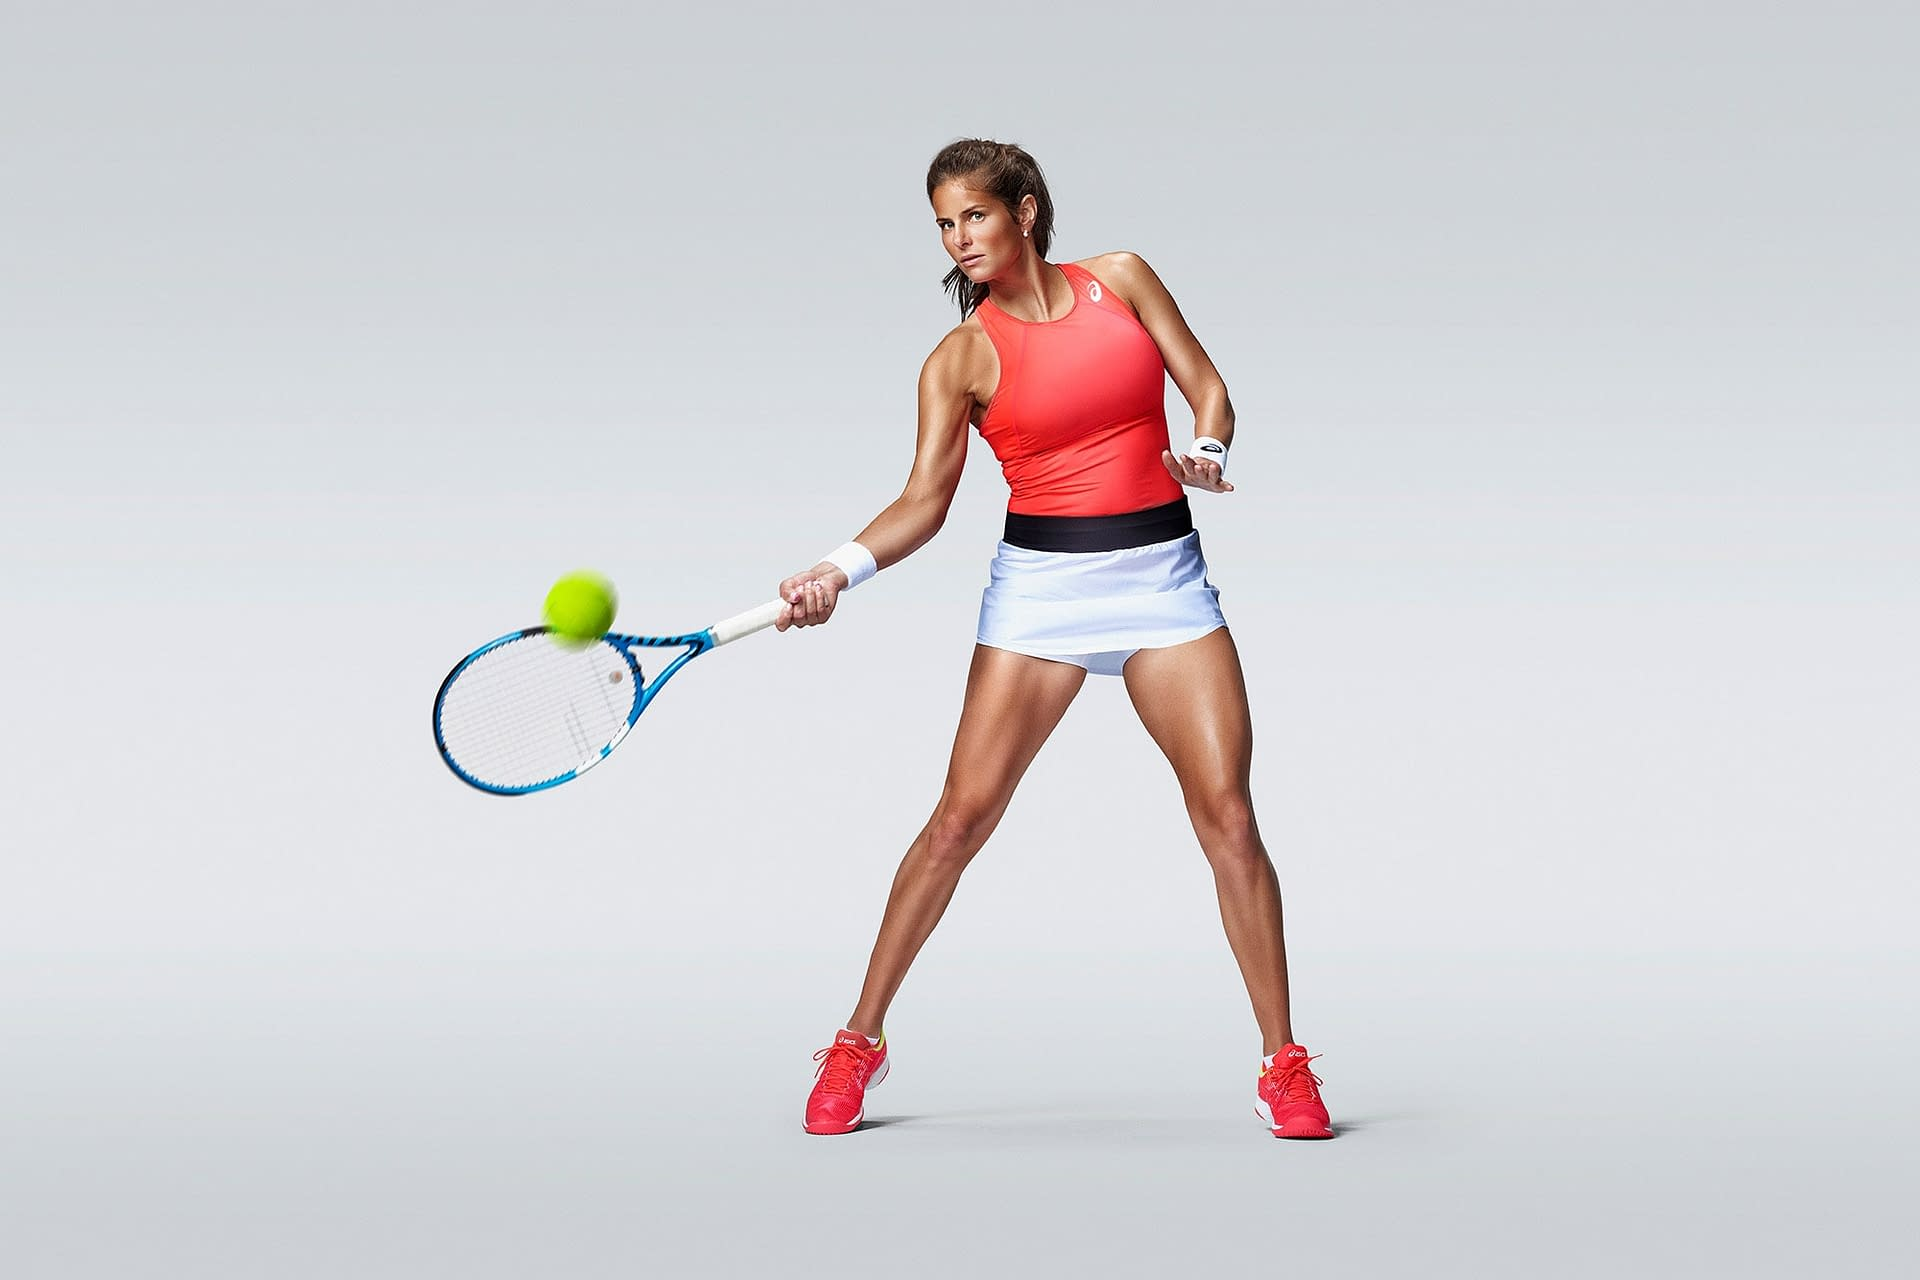 in studio and on location product photo shoot in spain madrid with tennis player julia goerges wearing the asics tennis shoe